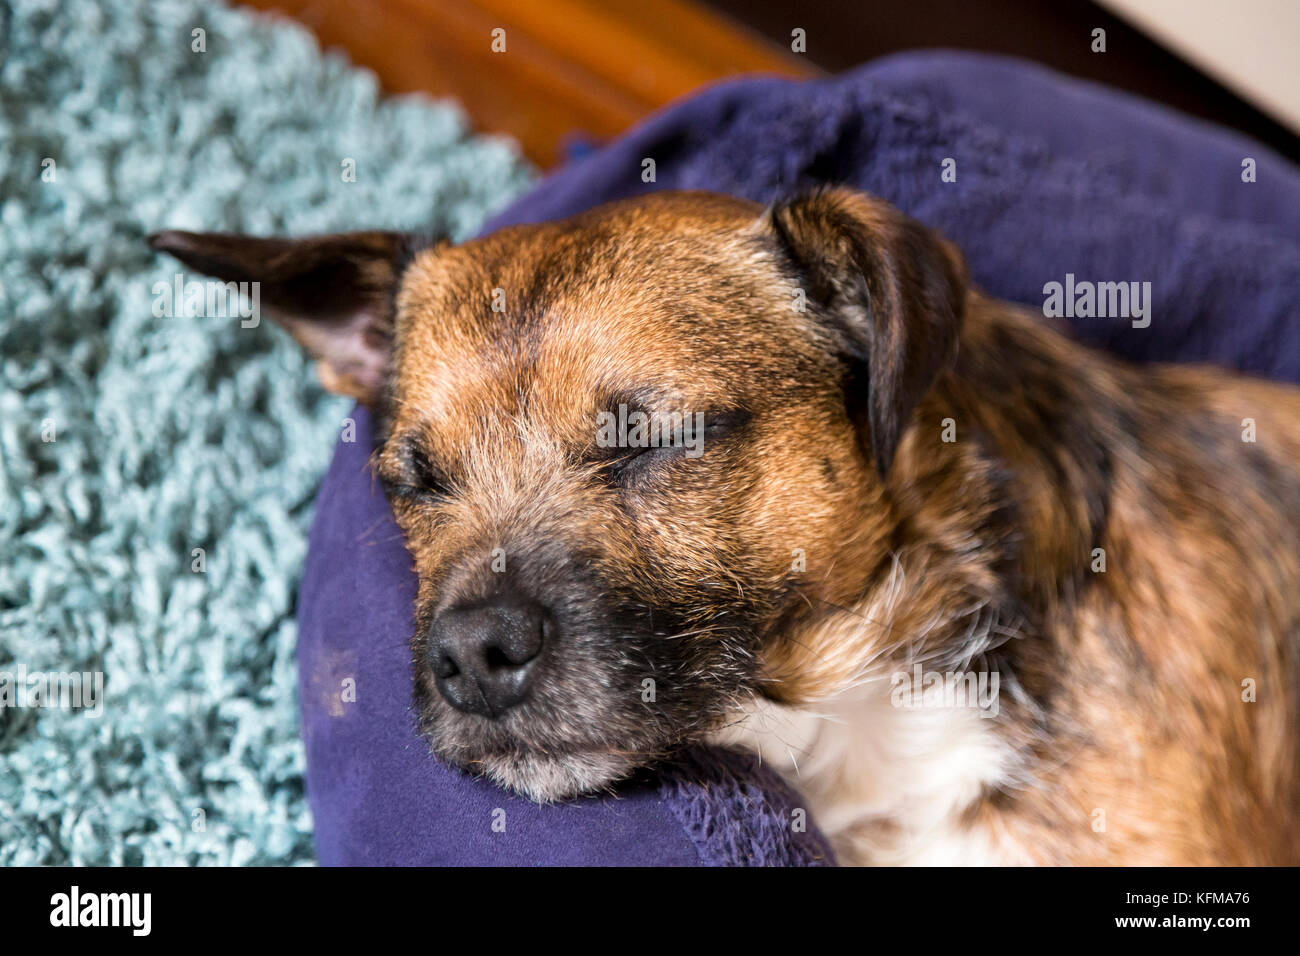 small terrier pet dog, sleeping on bed - Stock Image